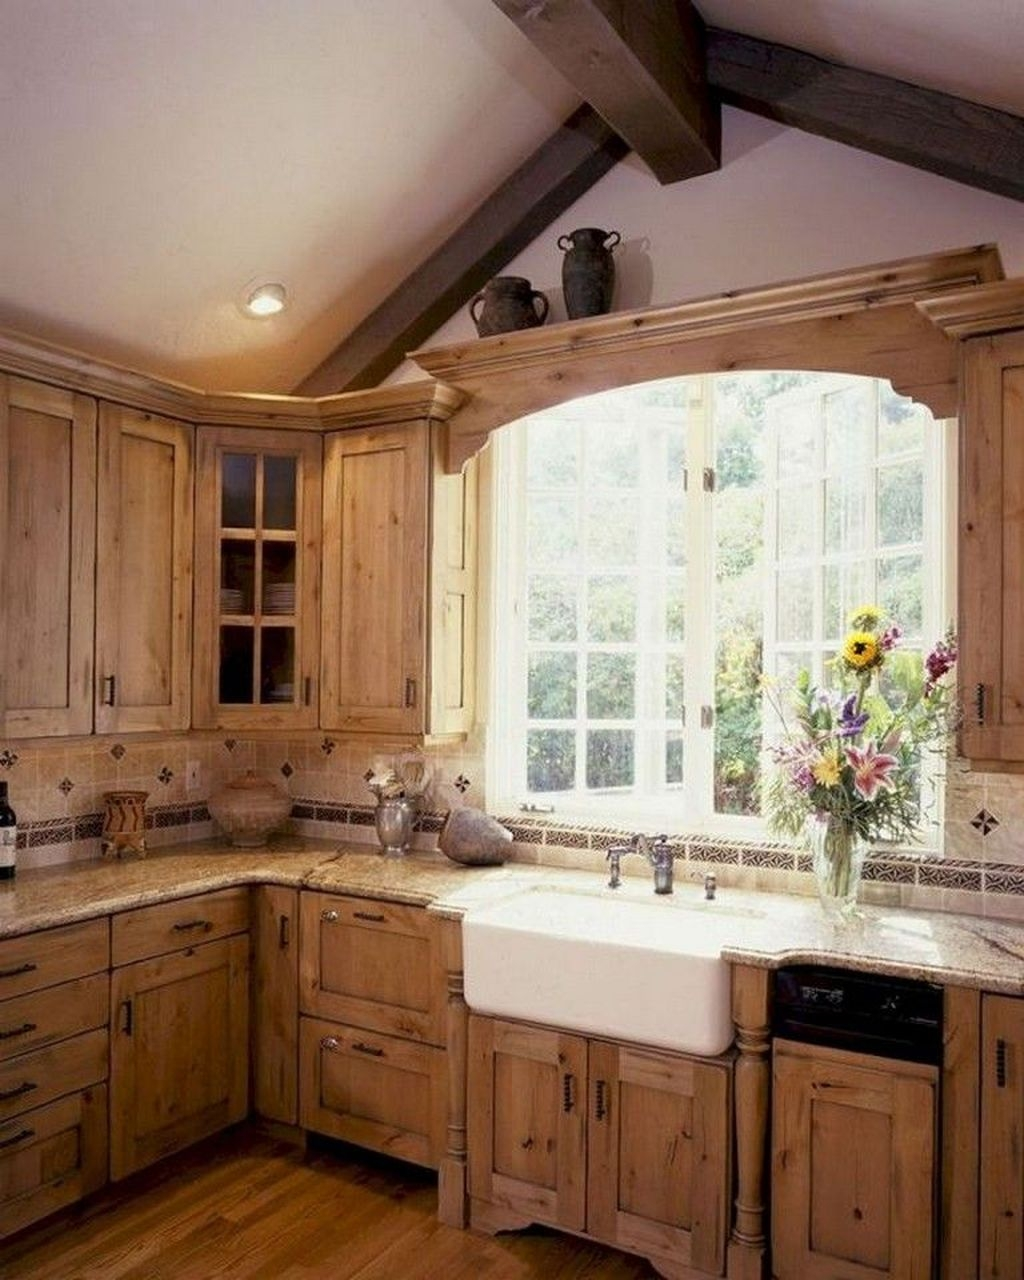 Incredible Farmhouse Kitchen Cabinet Makeover Design Ideas15